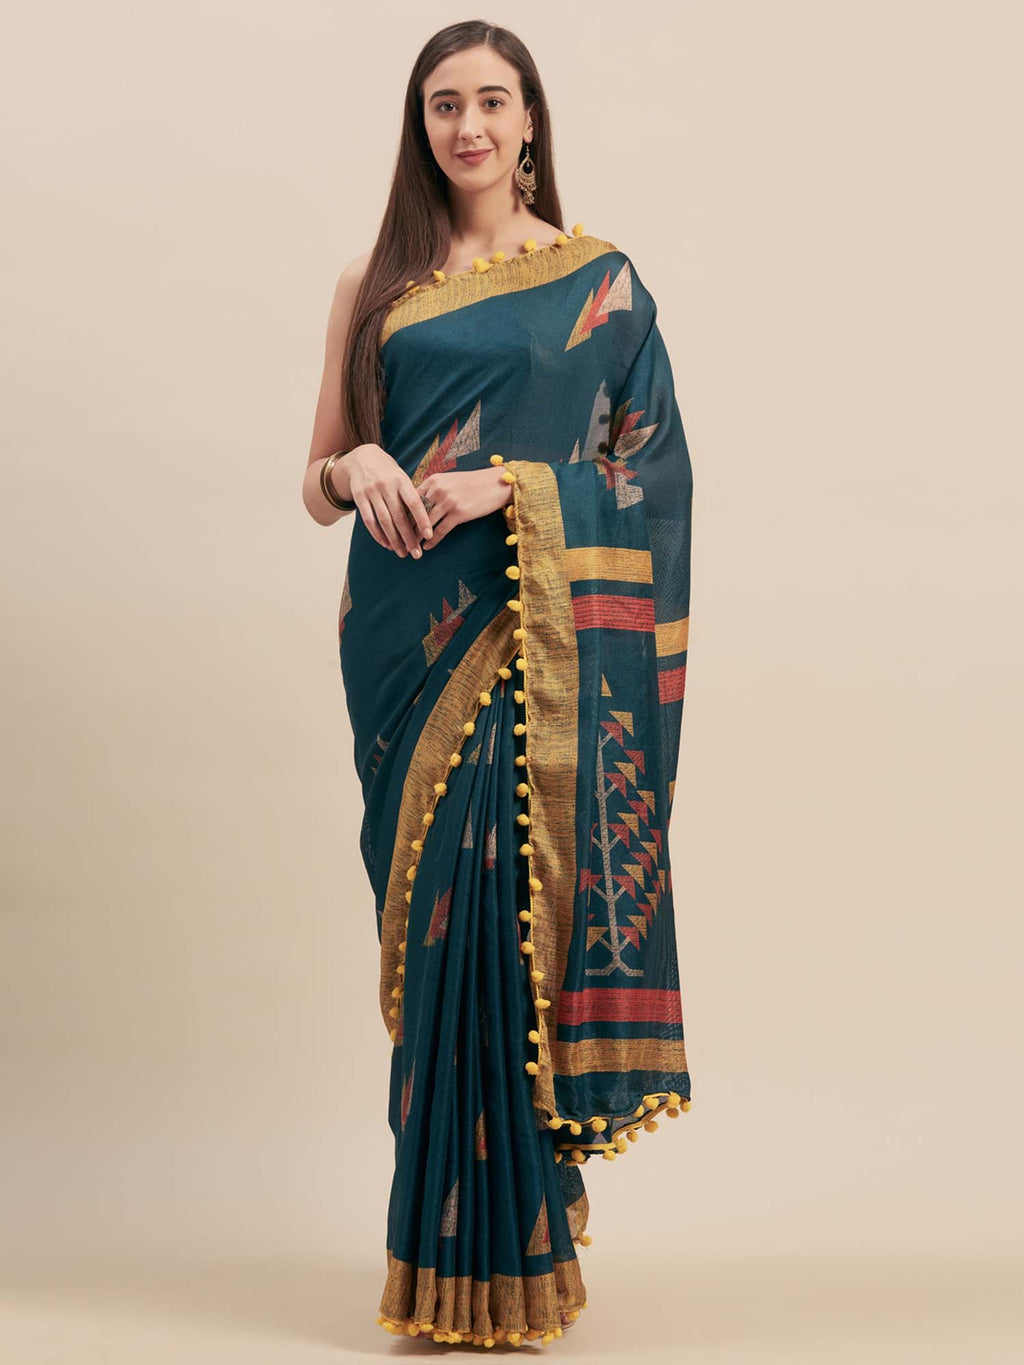 Teal Blue Jute Cotton Printed Saree With Pom Pom Lace - Riviera Closet